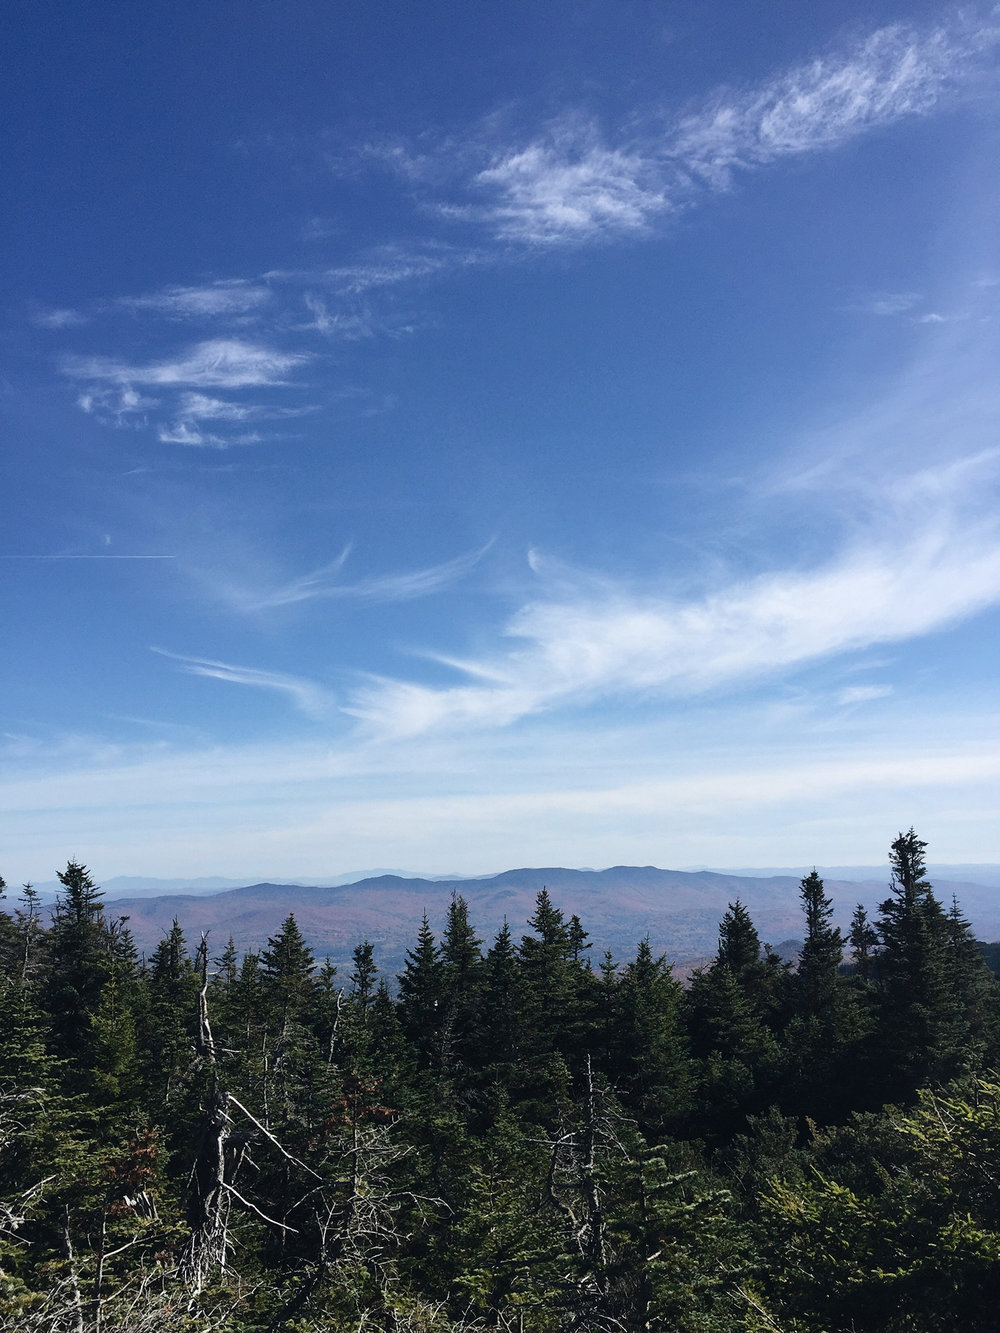 SINCE I ACTUALLY CAN'T SIT STILL, WE DECIDED TO HIKE MT. MANSFIELD THIS WEEKEND WITH SOME FAMILY THAT WAS IN TOWN.